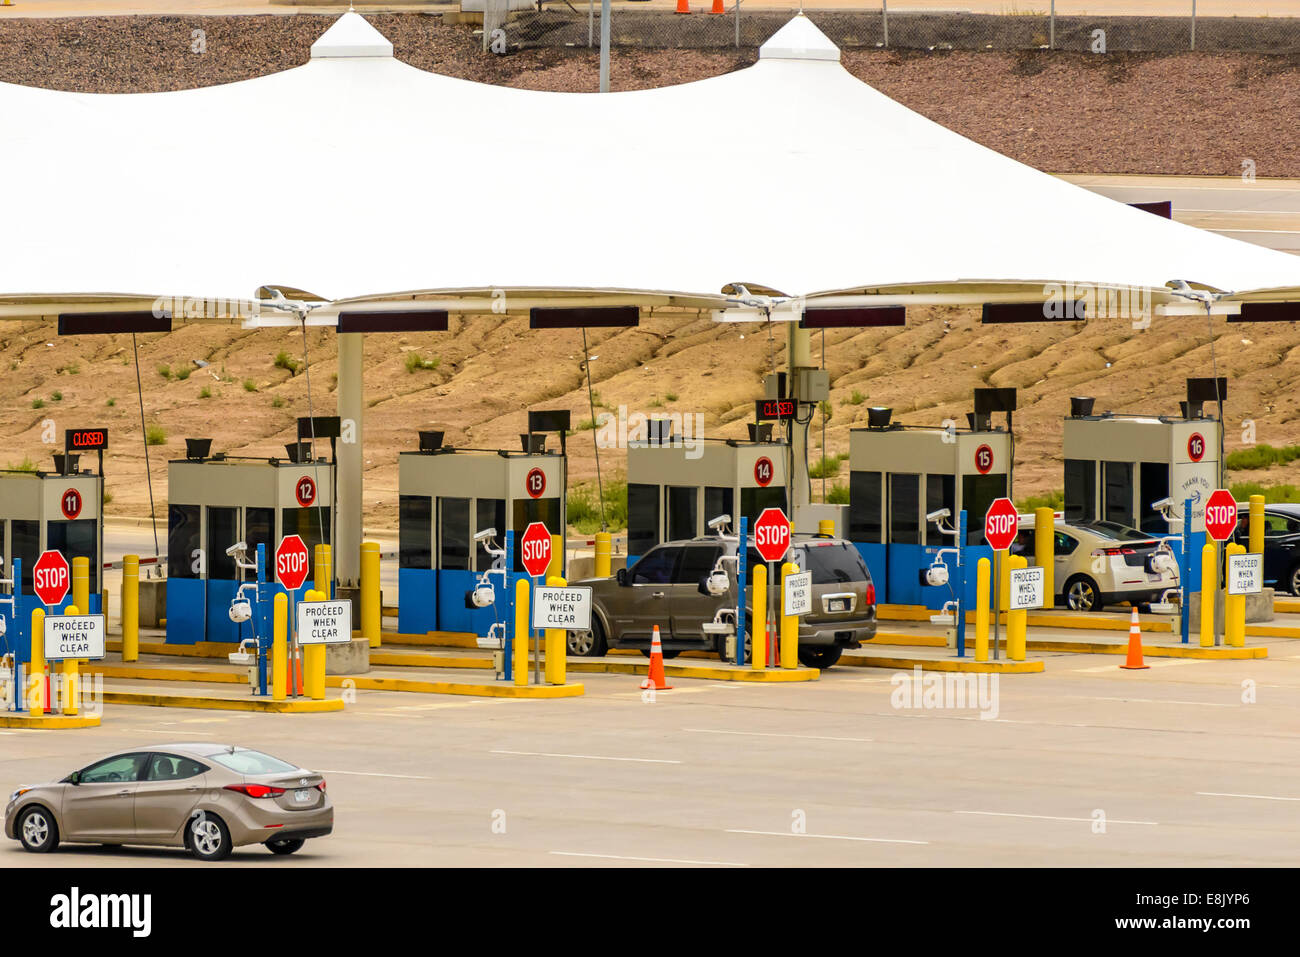 DIA DEN Denver International Airport - exit toll gates at airport parking lot & DIA DEN Denver International Airport - exit toll gates at ...